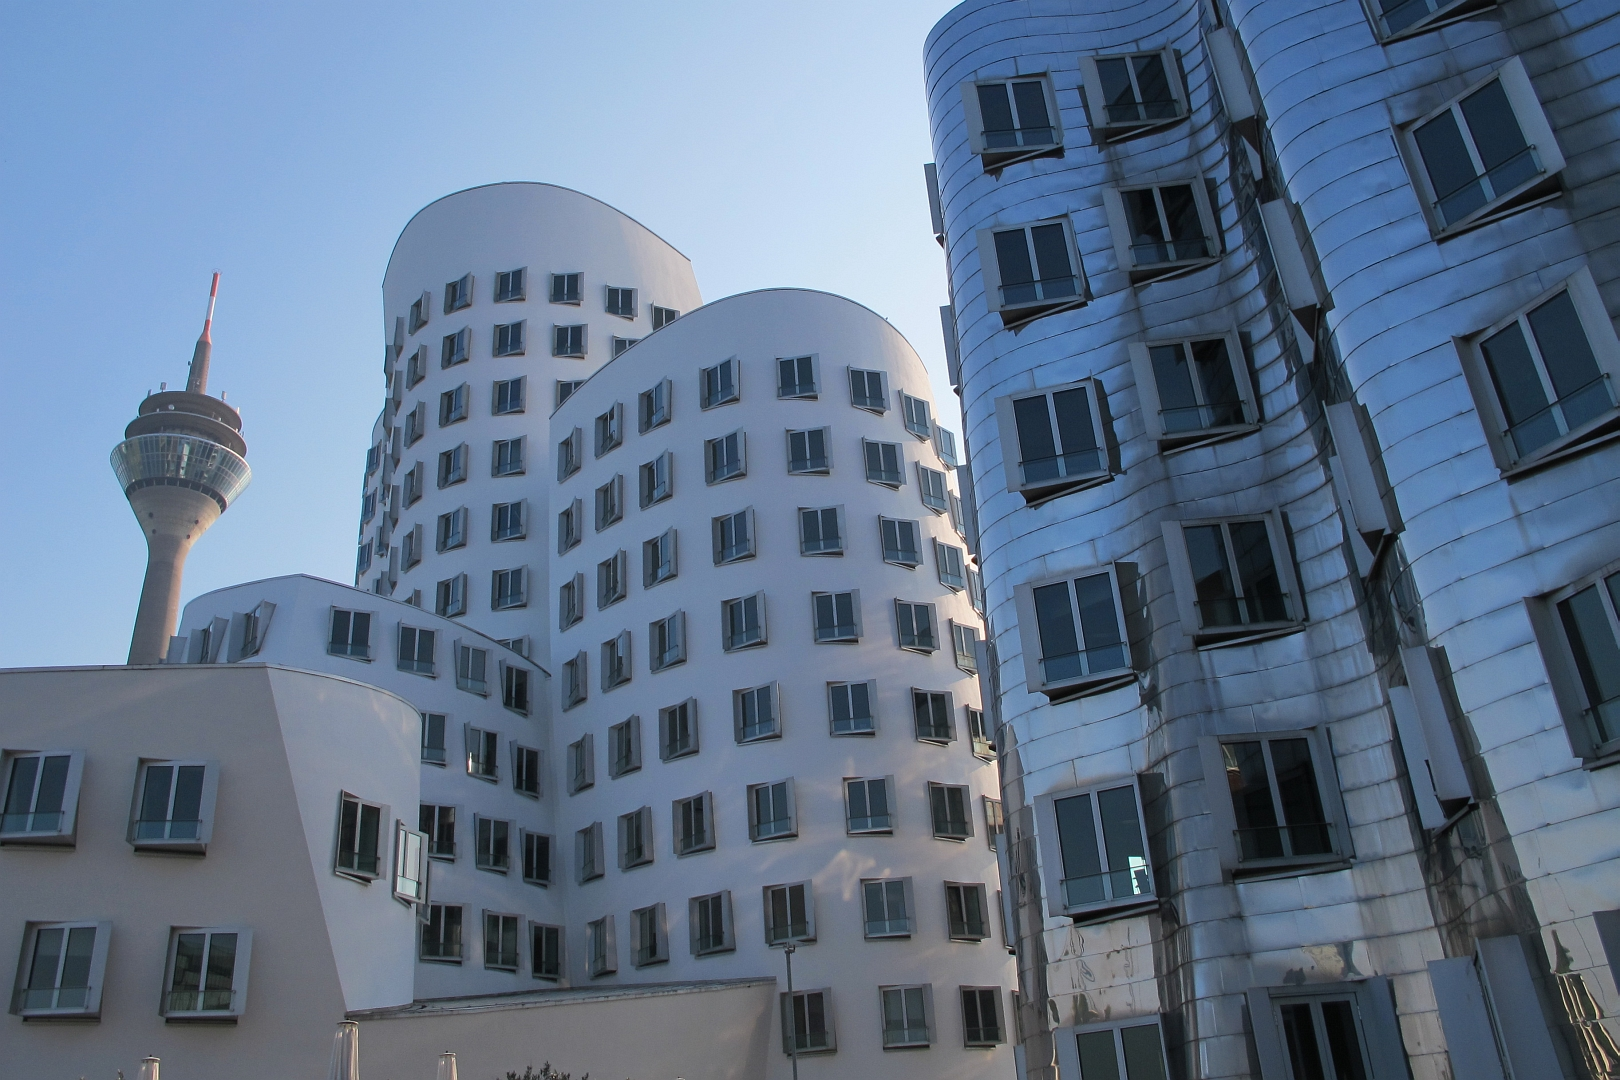 heikausfoto_buildings008